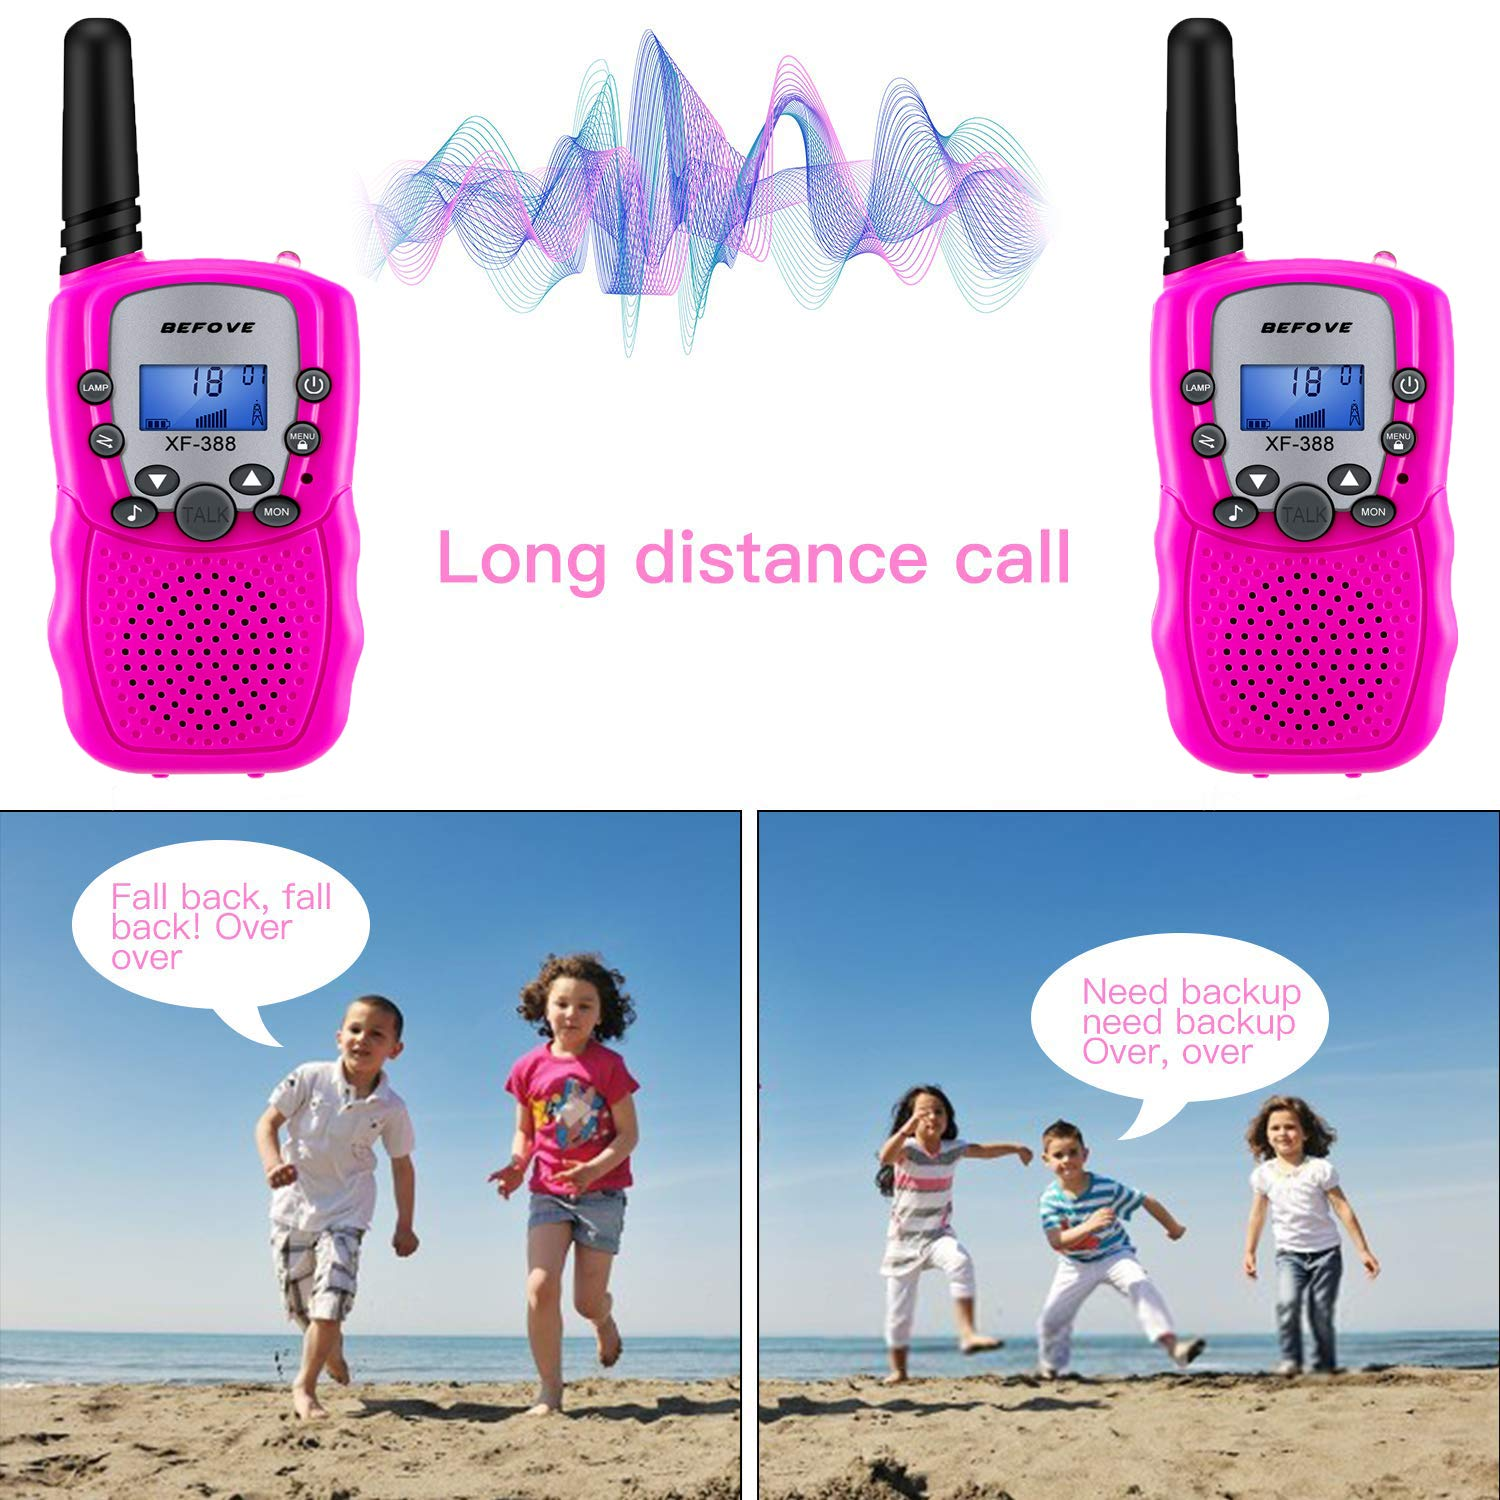 Befove Walkie Talkies, 3 x Walkie Talkie Kids 22 Channel Handheld FRS Transceiver Two Way Radios Long Range Walky Talky for Kids Adults, Camping Hiking Outdoor Use with Straps by Befove (Image #3)